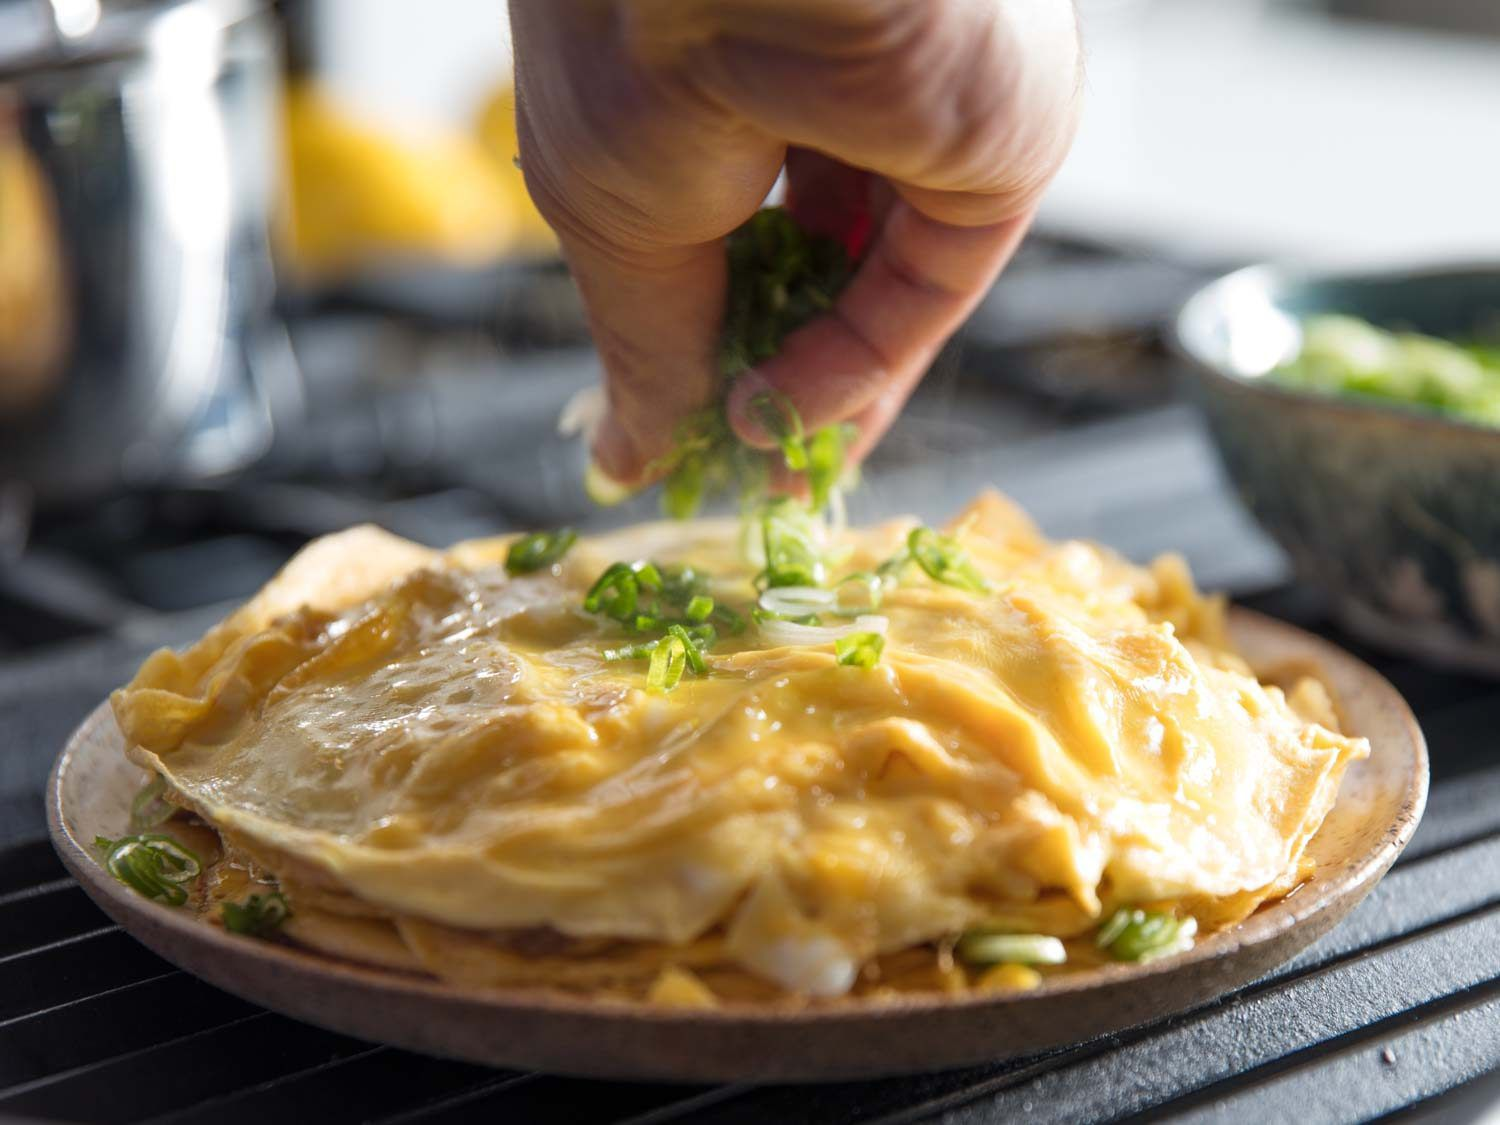 Scallions being scattered over Chinese-style layered omelette